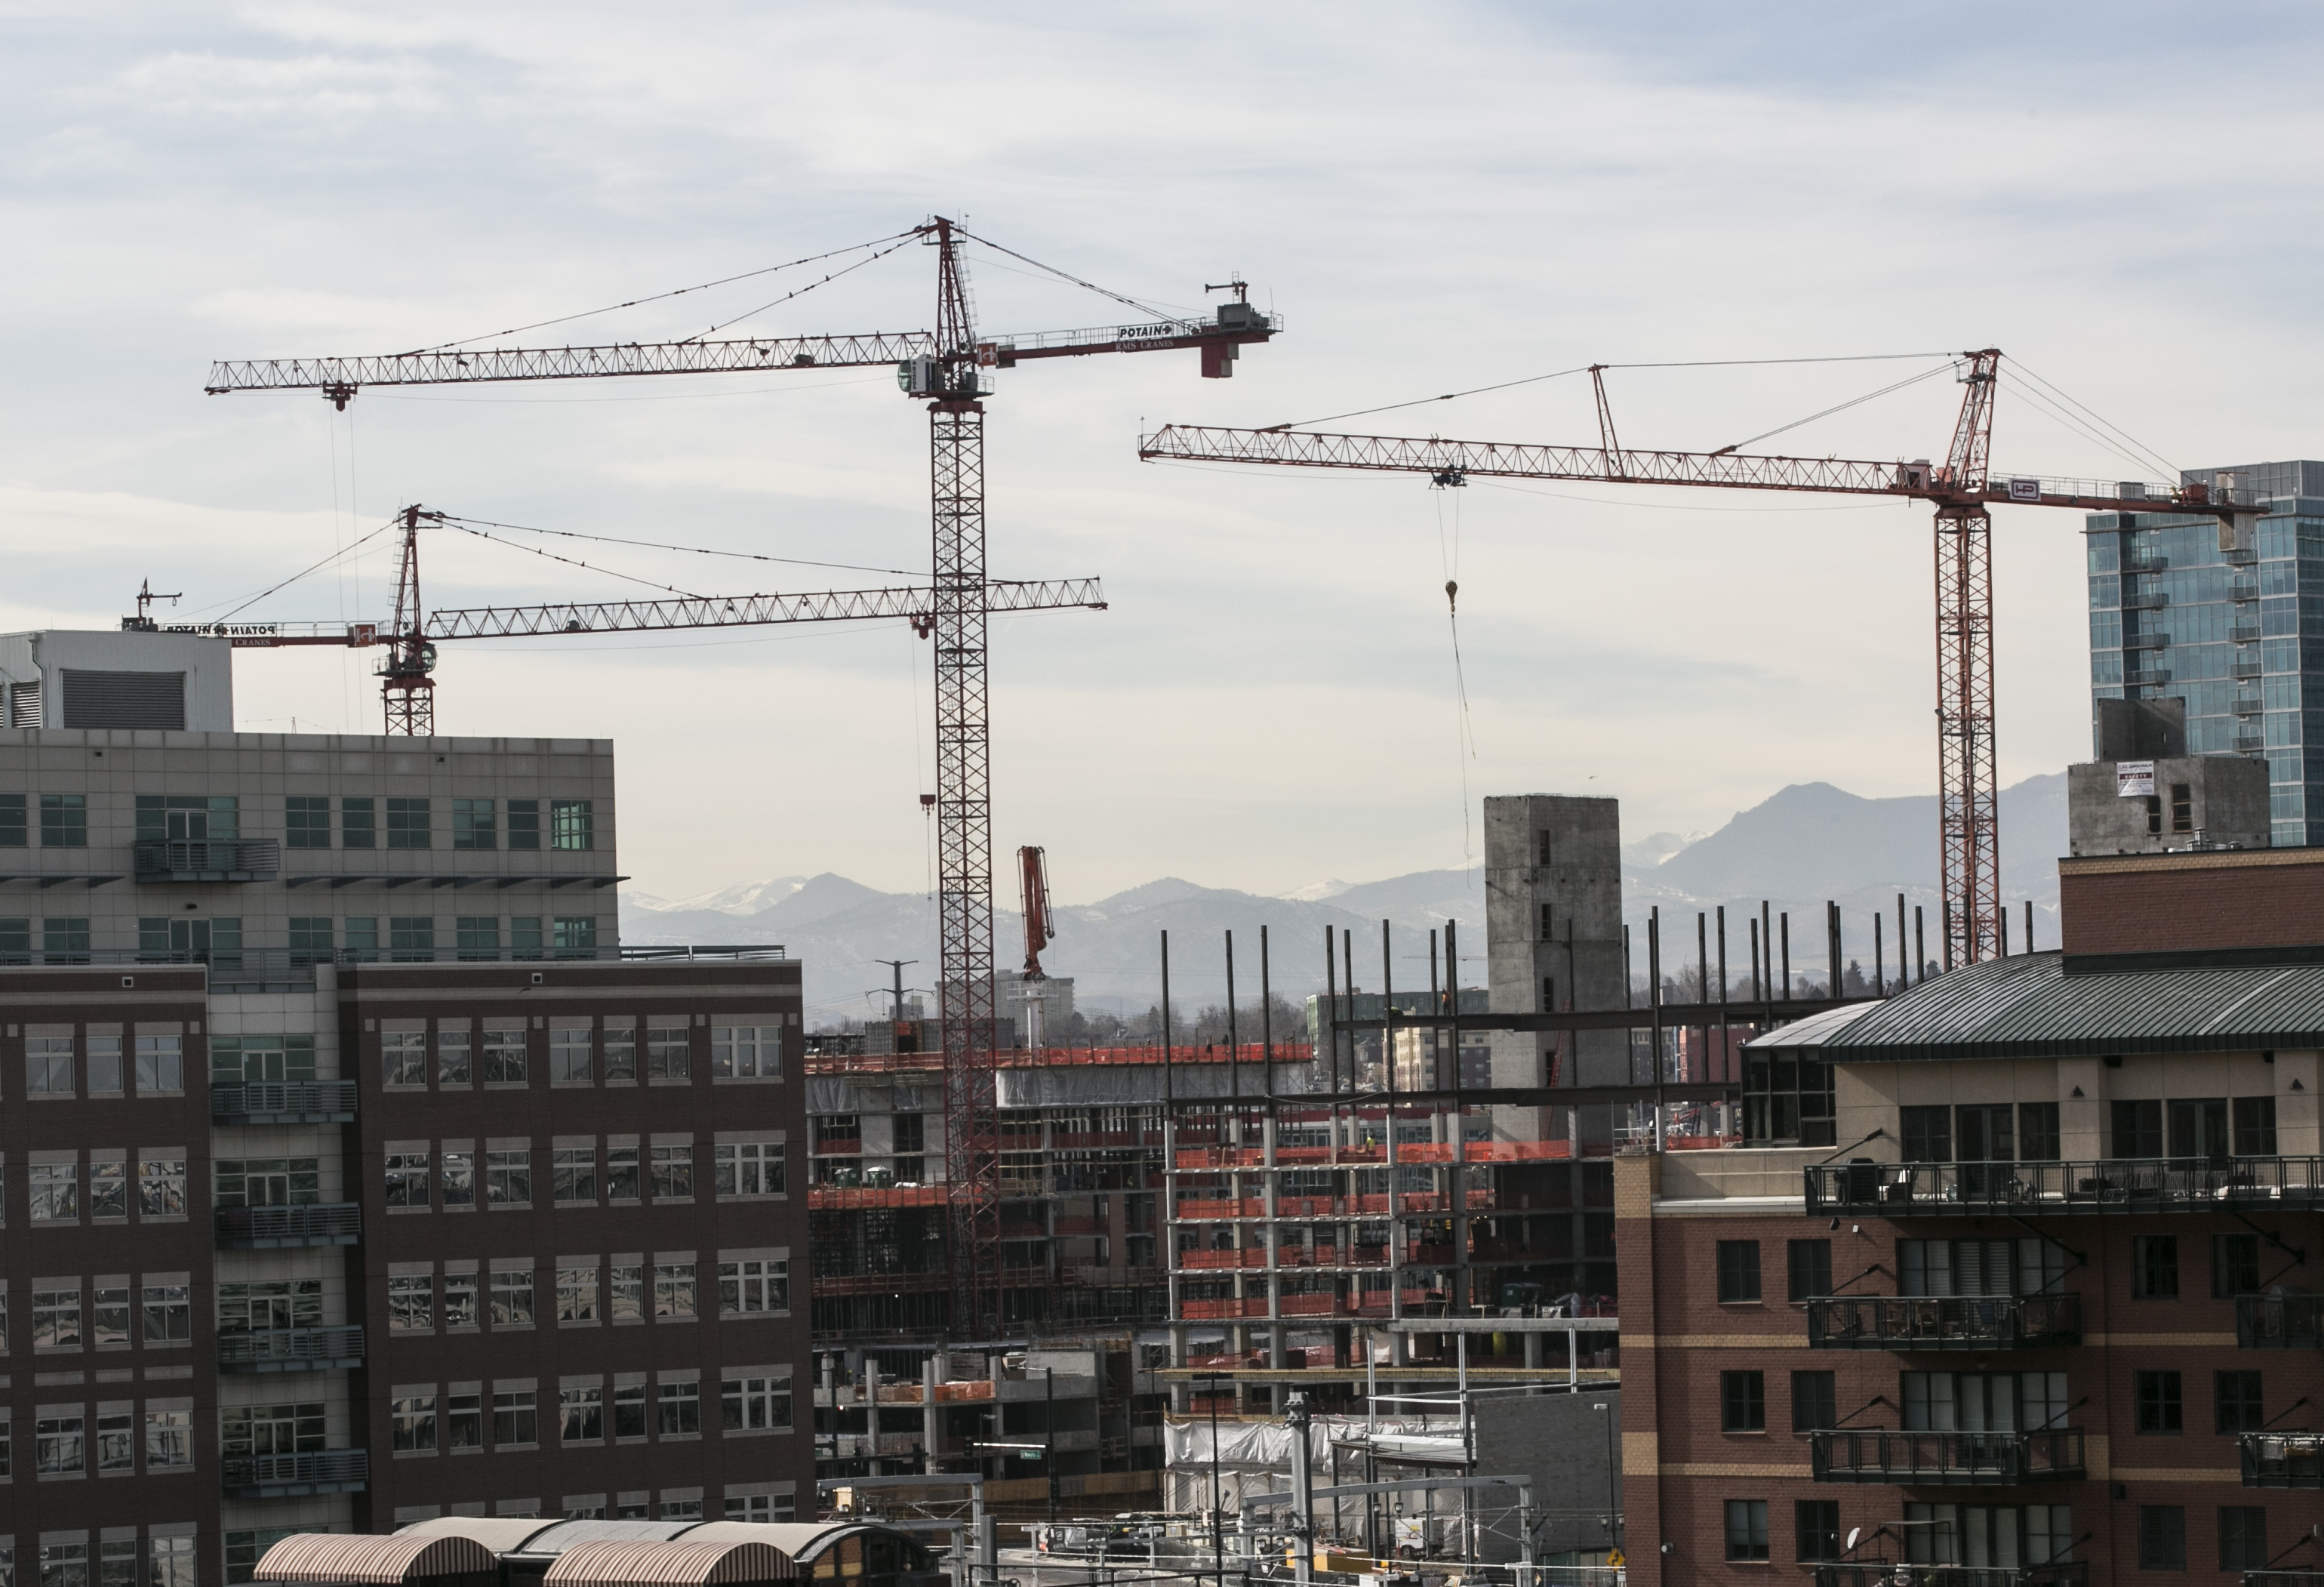 Photo: Construction cranes in LoDo, Feb. 2016 1